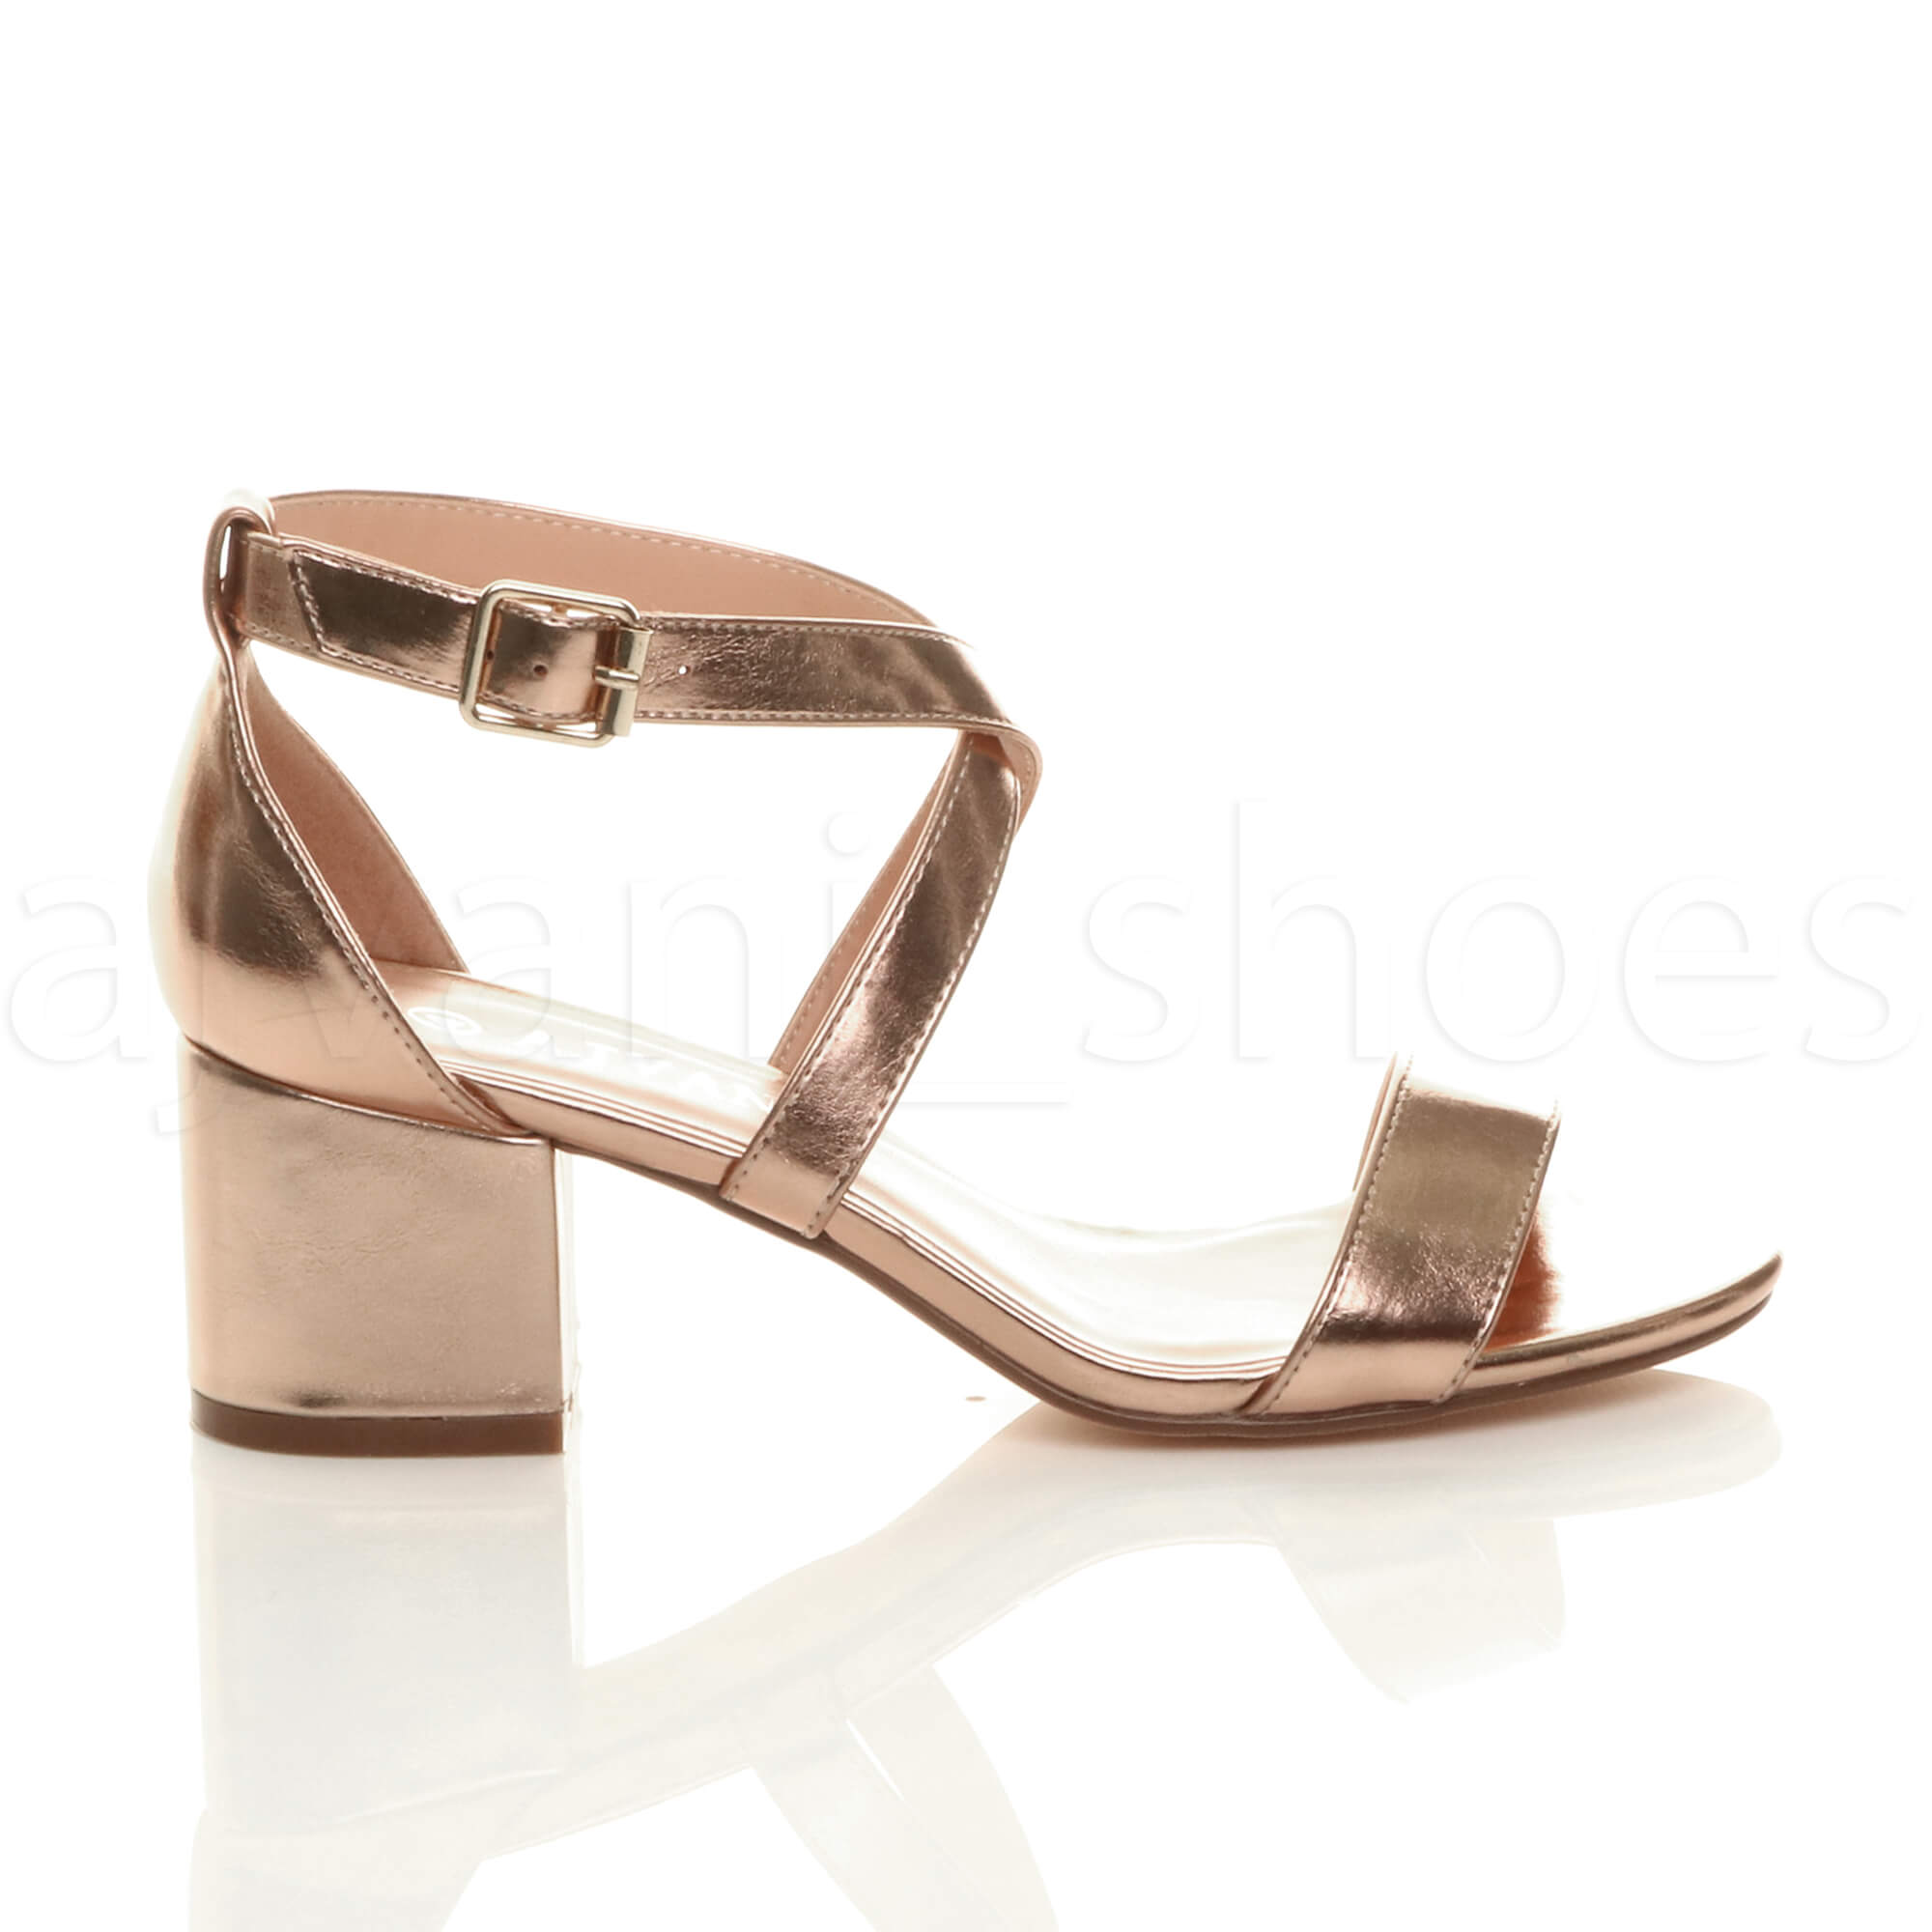 WOMENS-LADIES-MID-LOW-BLOCK-HEEL-CROSS-STRAPS-PARTY-STRAPPY-SANDALS-SHOES-SIZE thumbnail 70